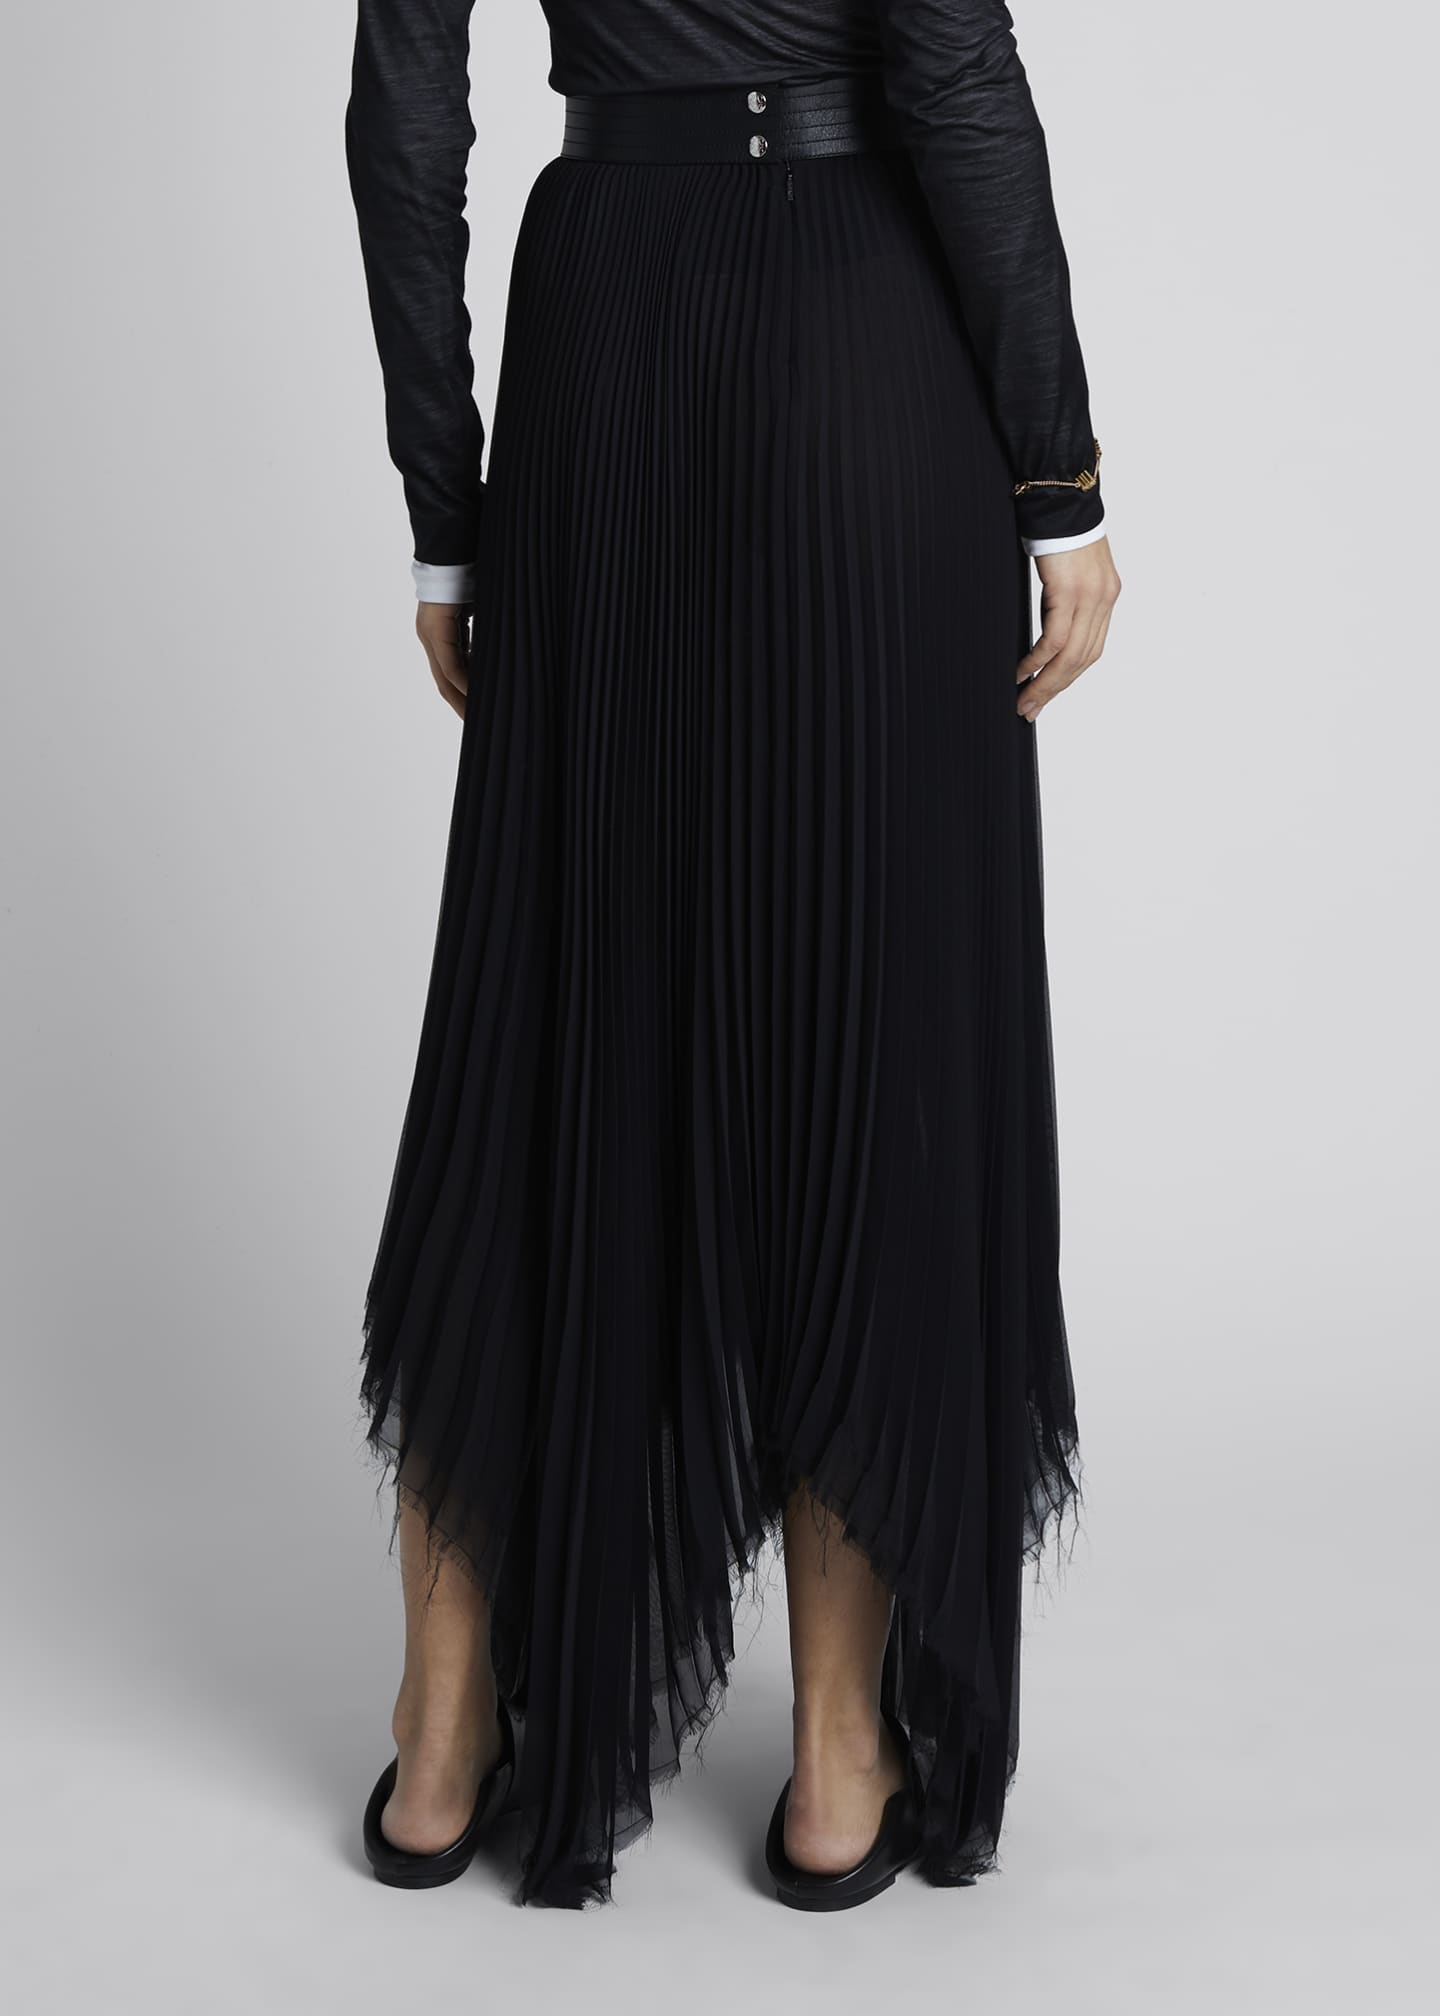 Image 2 of 4: Pleated Asymmetric Midi Skirt with Leather Trim